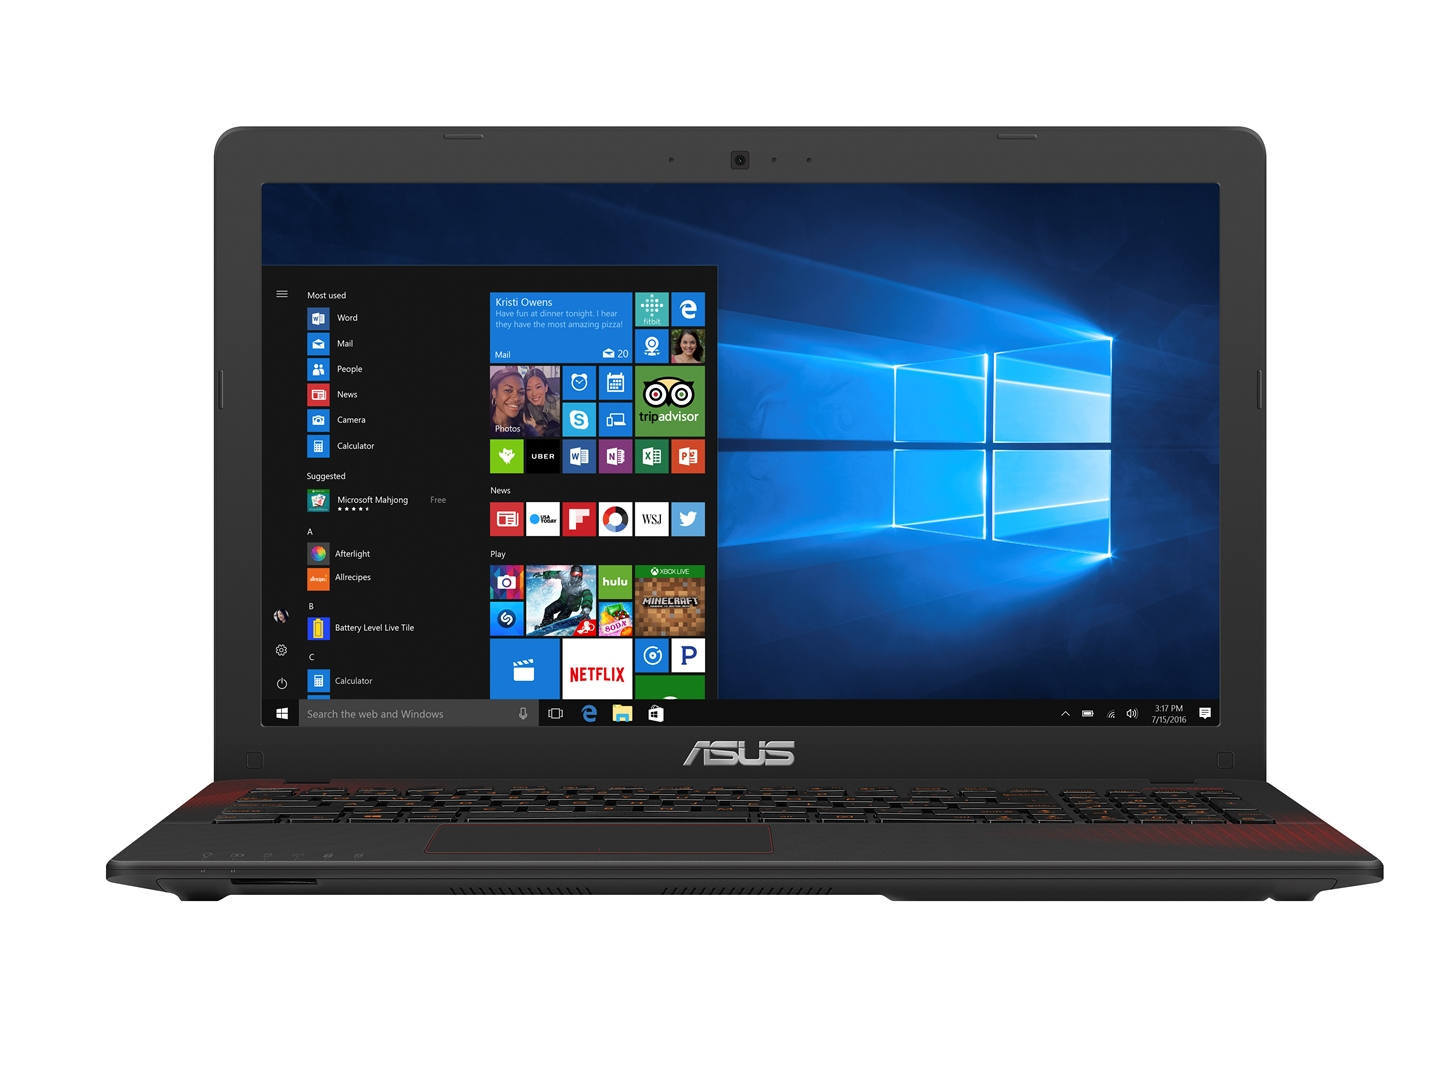 "ASUS F550VX-DM587T i7-7700HQ/8+8GB/256GB SSD M.2 + 1TB 5400 ot./GeForce 950M/15,6"" FHD LED matný/Win10/black"